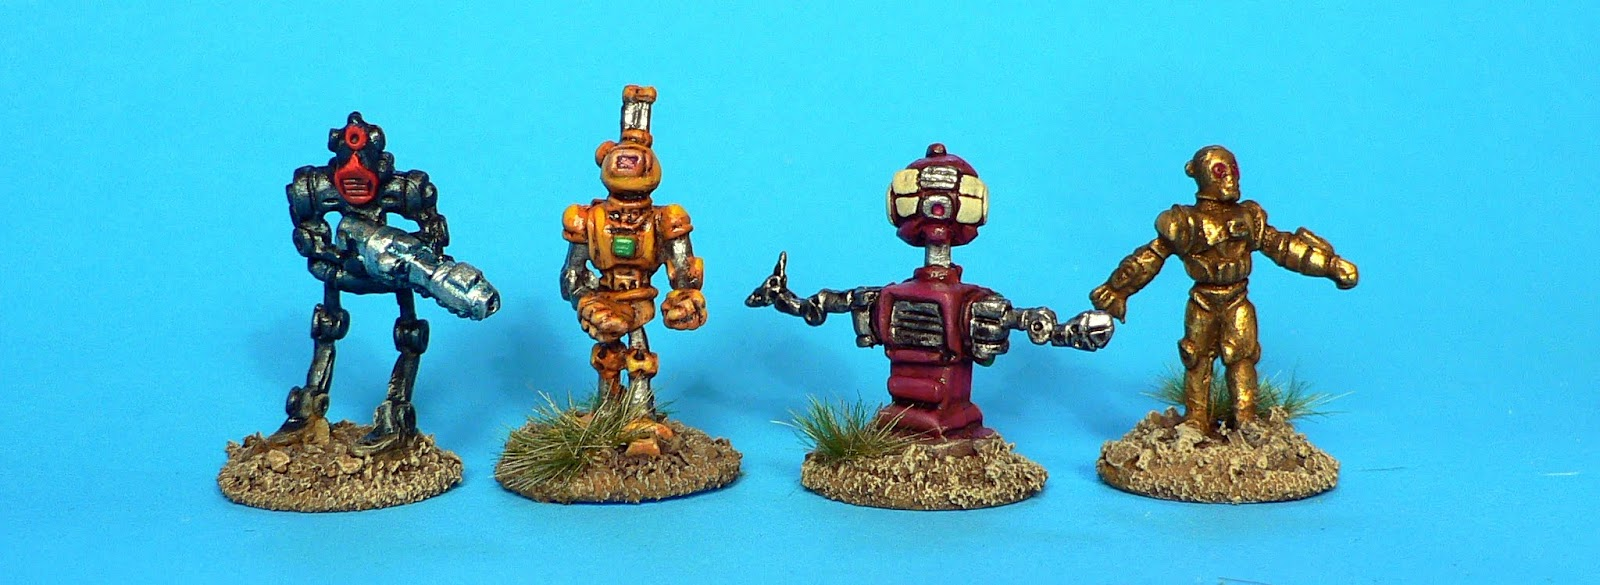 Dr  The Viking's Miniature Games Hell: Retro Robots